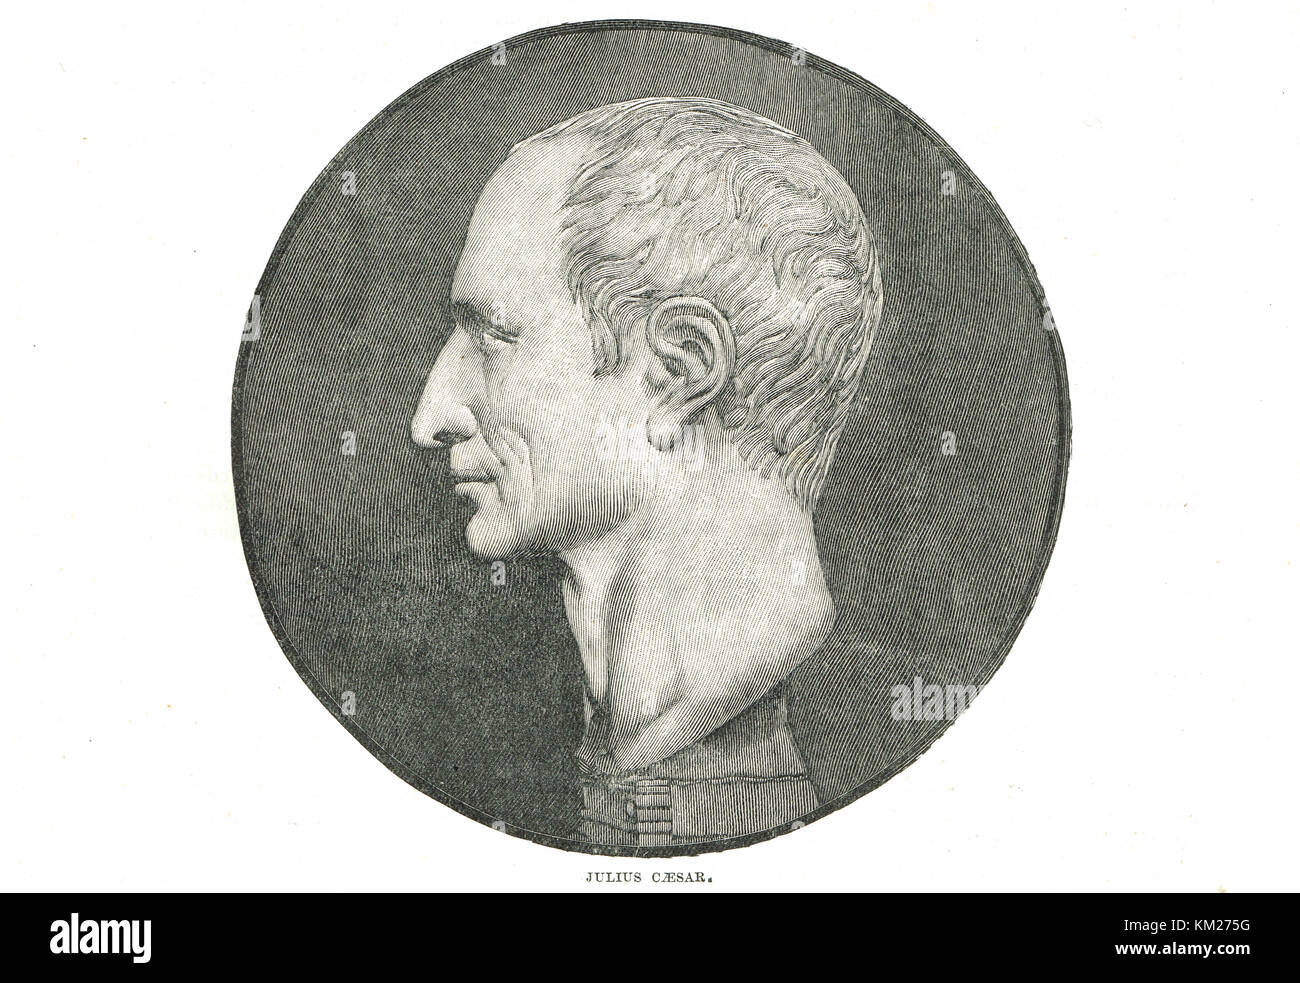 a biography of julius caesar a roman dictator Julius caesar was a dictator that turned the roman republic to the roman empire even though the life time of julius caesar took place in 100 bc – 44 bc, people everywhere will mention caesar's name and legacy.